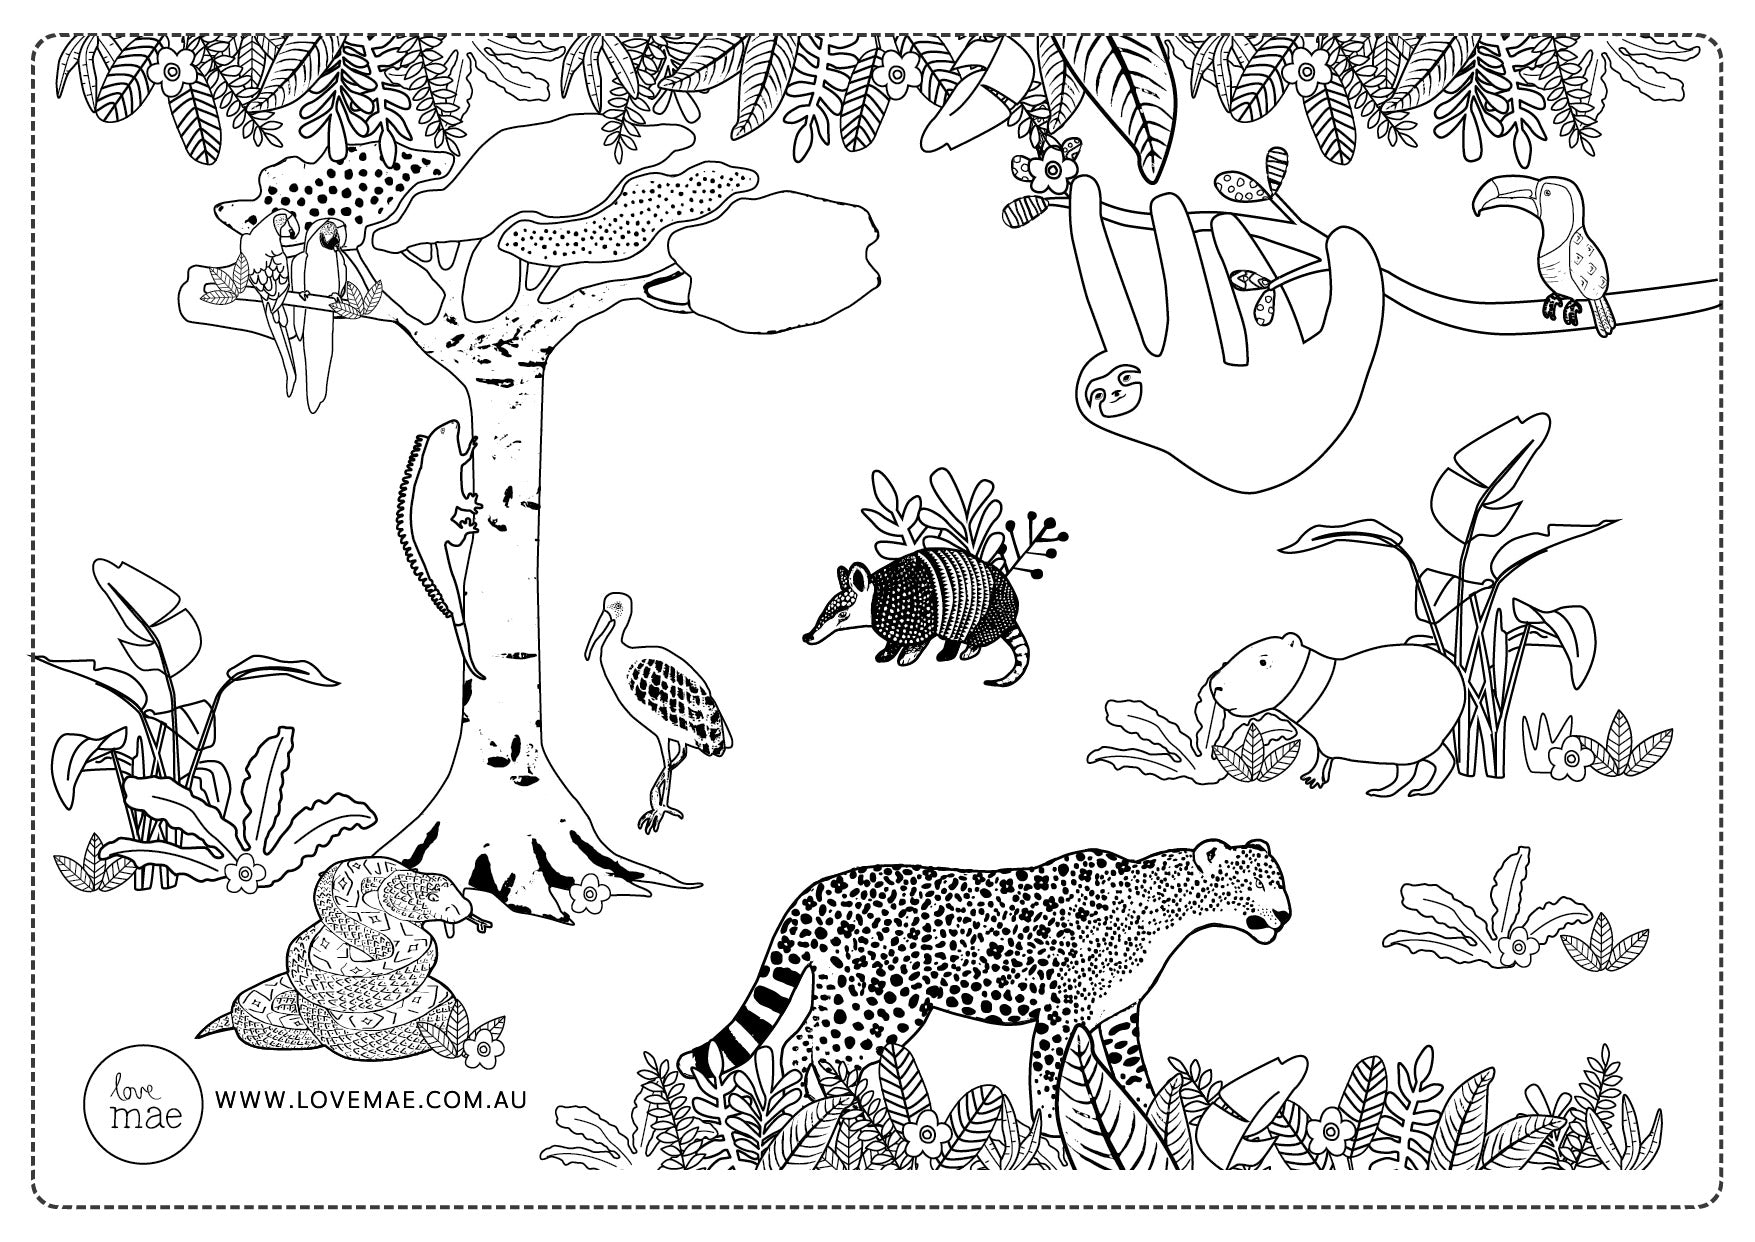 Amazon_Jungle_Animals_Forest_Nature_Illustration_Download_For_Kids_Colouring_In